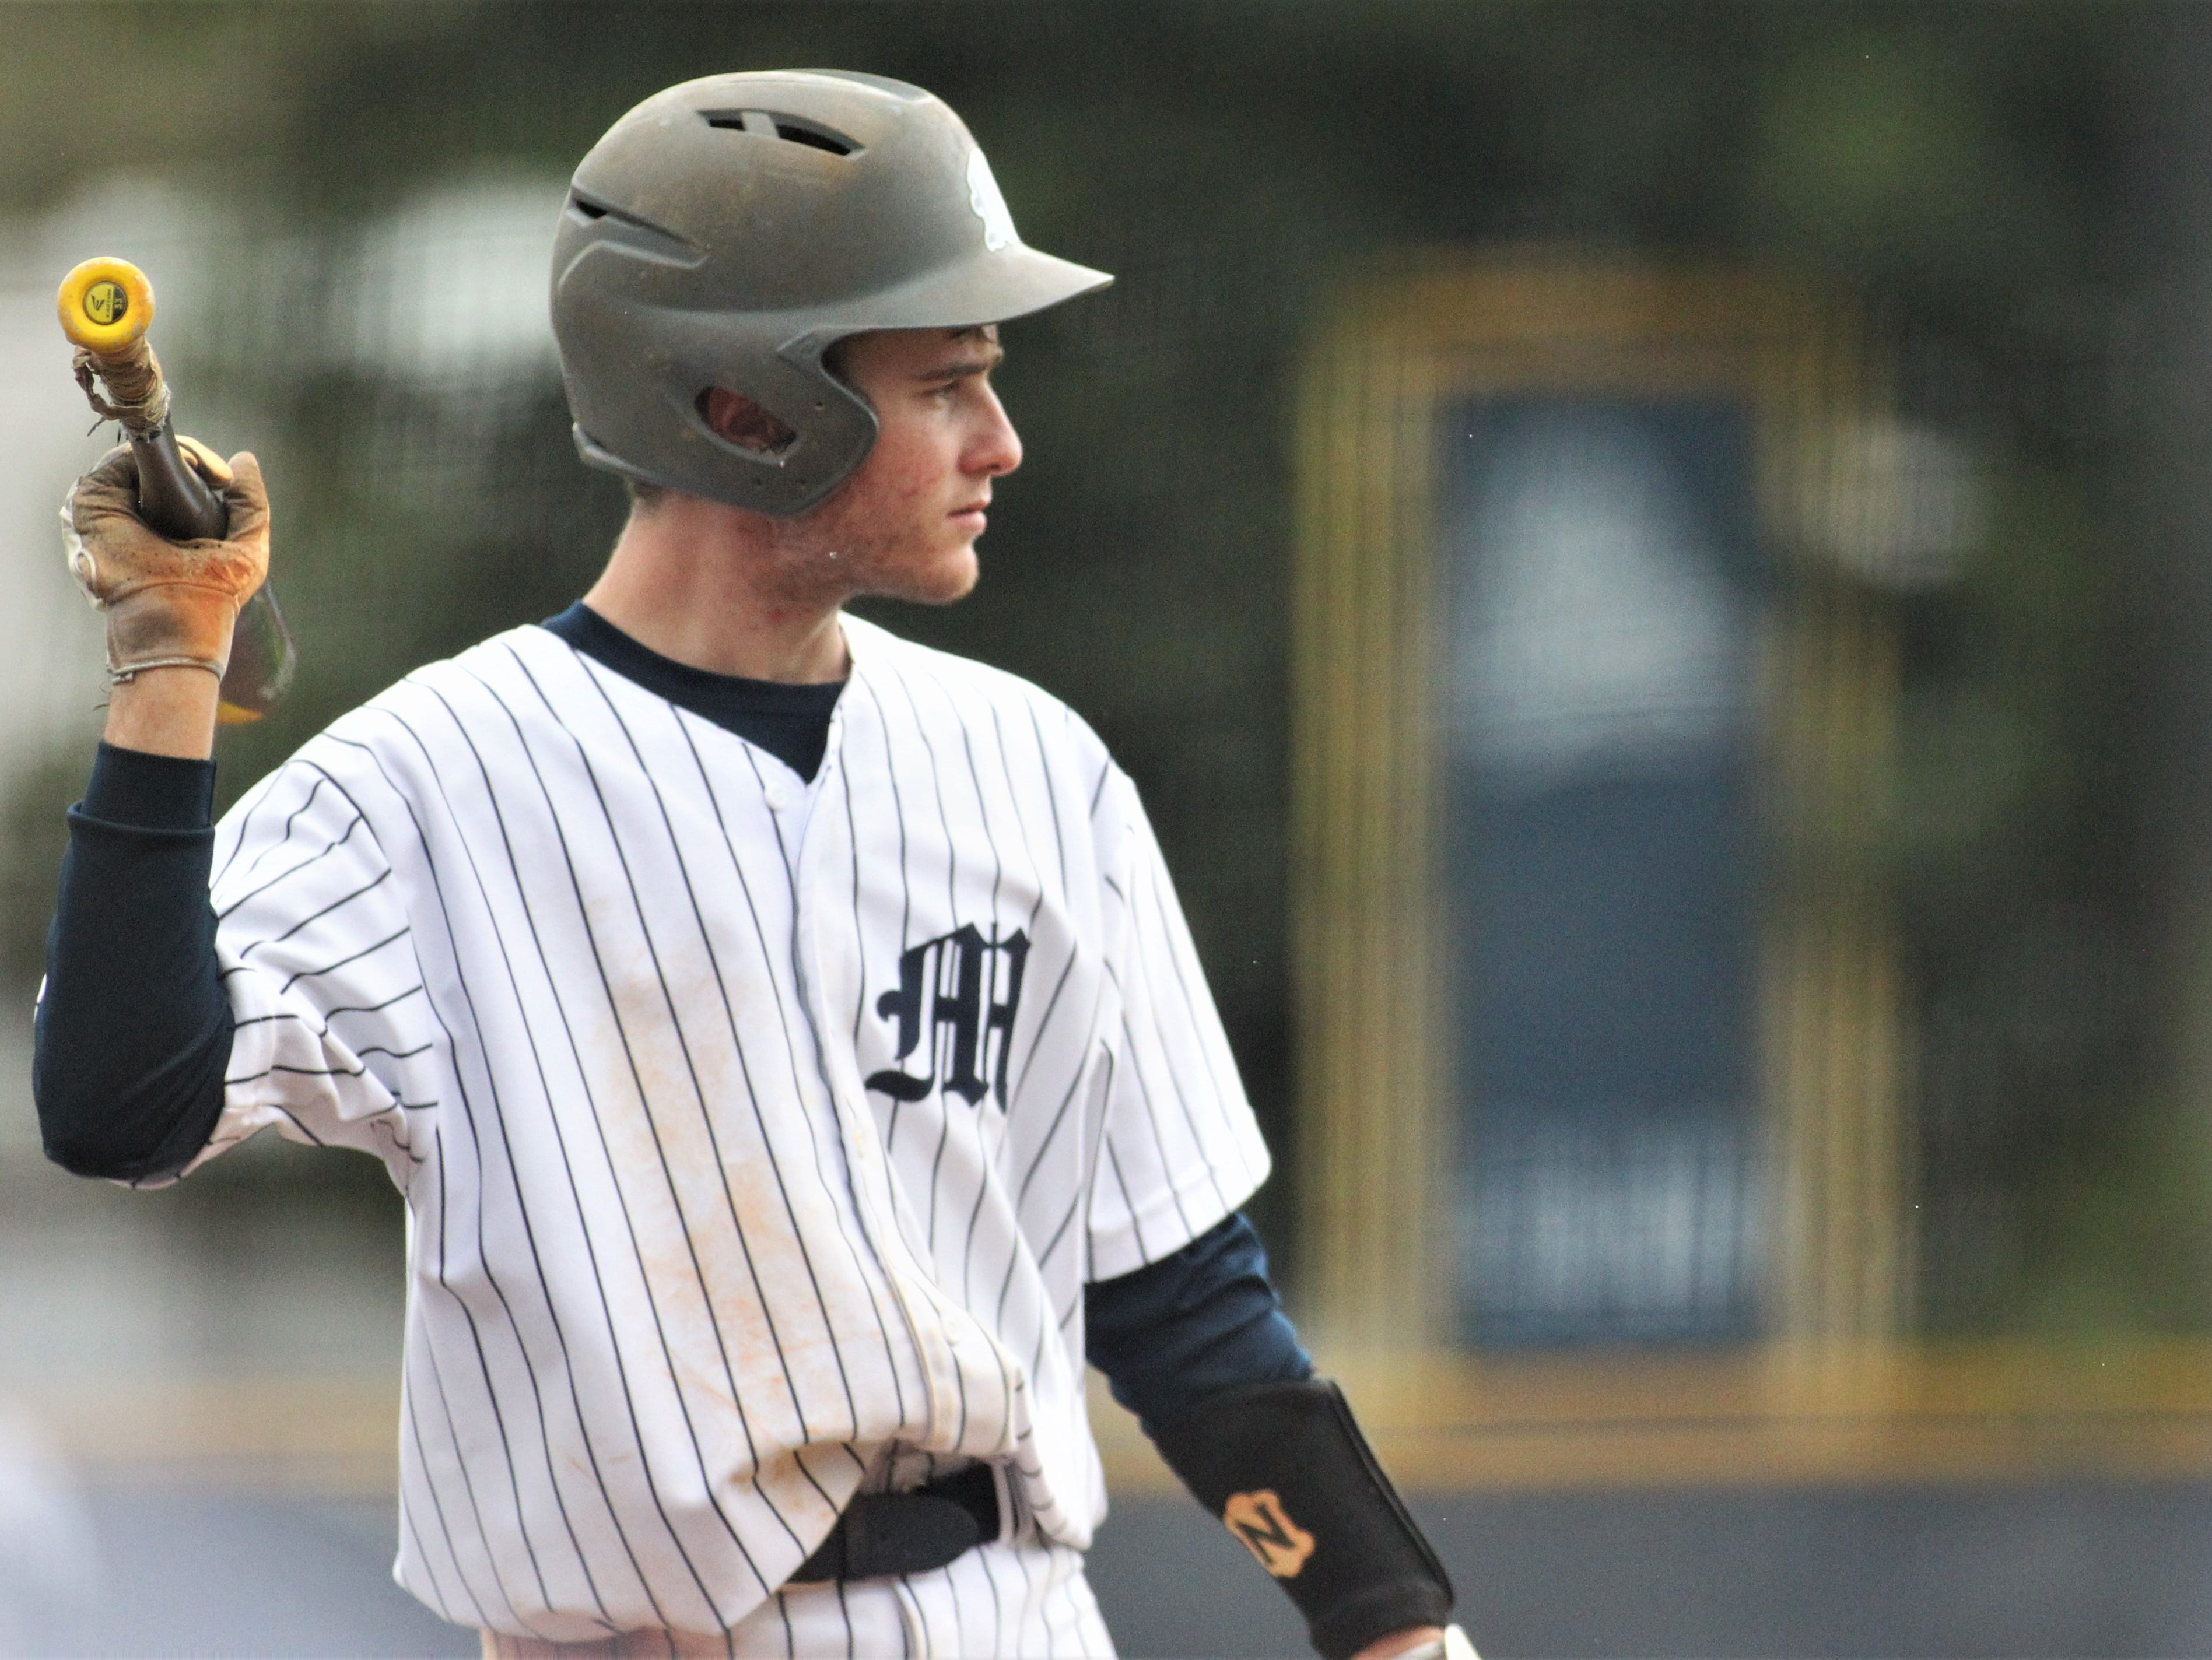 Maclay's Grant Harrison waits on deck as Liberty County's baseball team went on the road to beat Maclay 8-2 on Saturday, March 16, 2019. The Bulldogs played their first game following their head coach Corey Crum's tragic death six days ago.